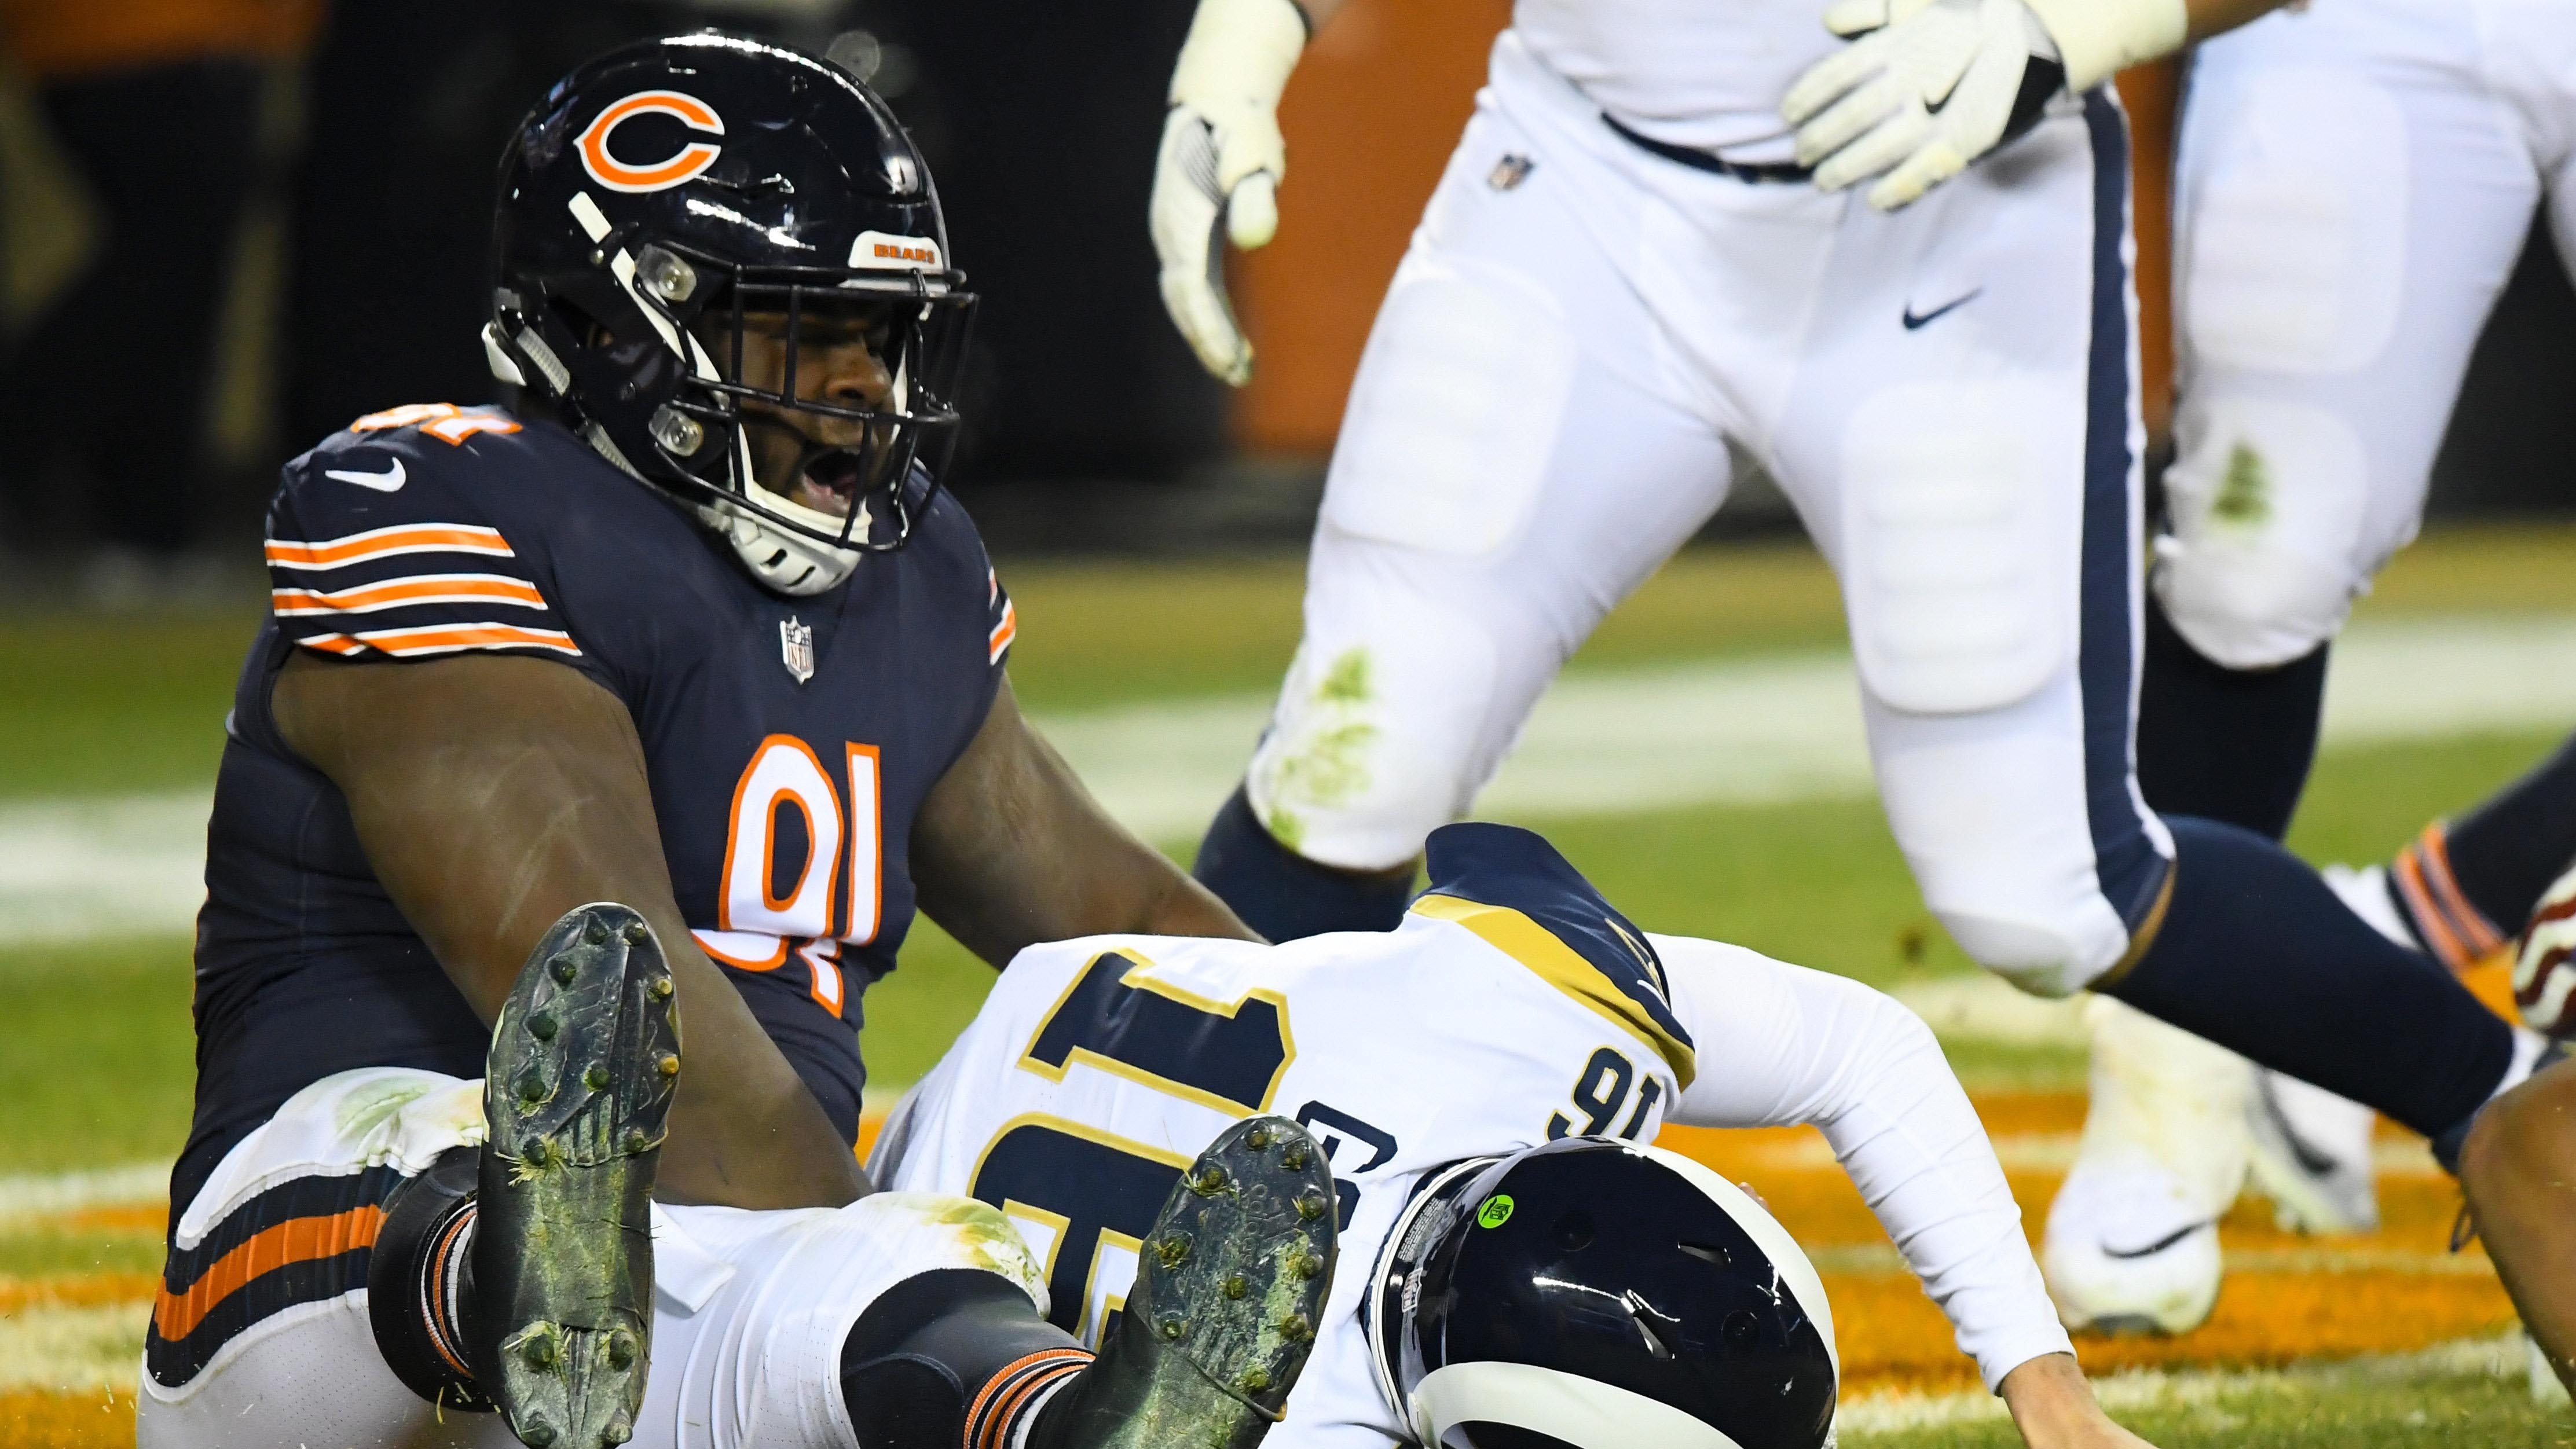 Chicago Bears nose tackle Eddie Goldman (91) sacks Los Angeles Rams quarterback Jared Goff (16) for a safety during the second half at Soldier Field.